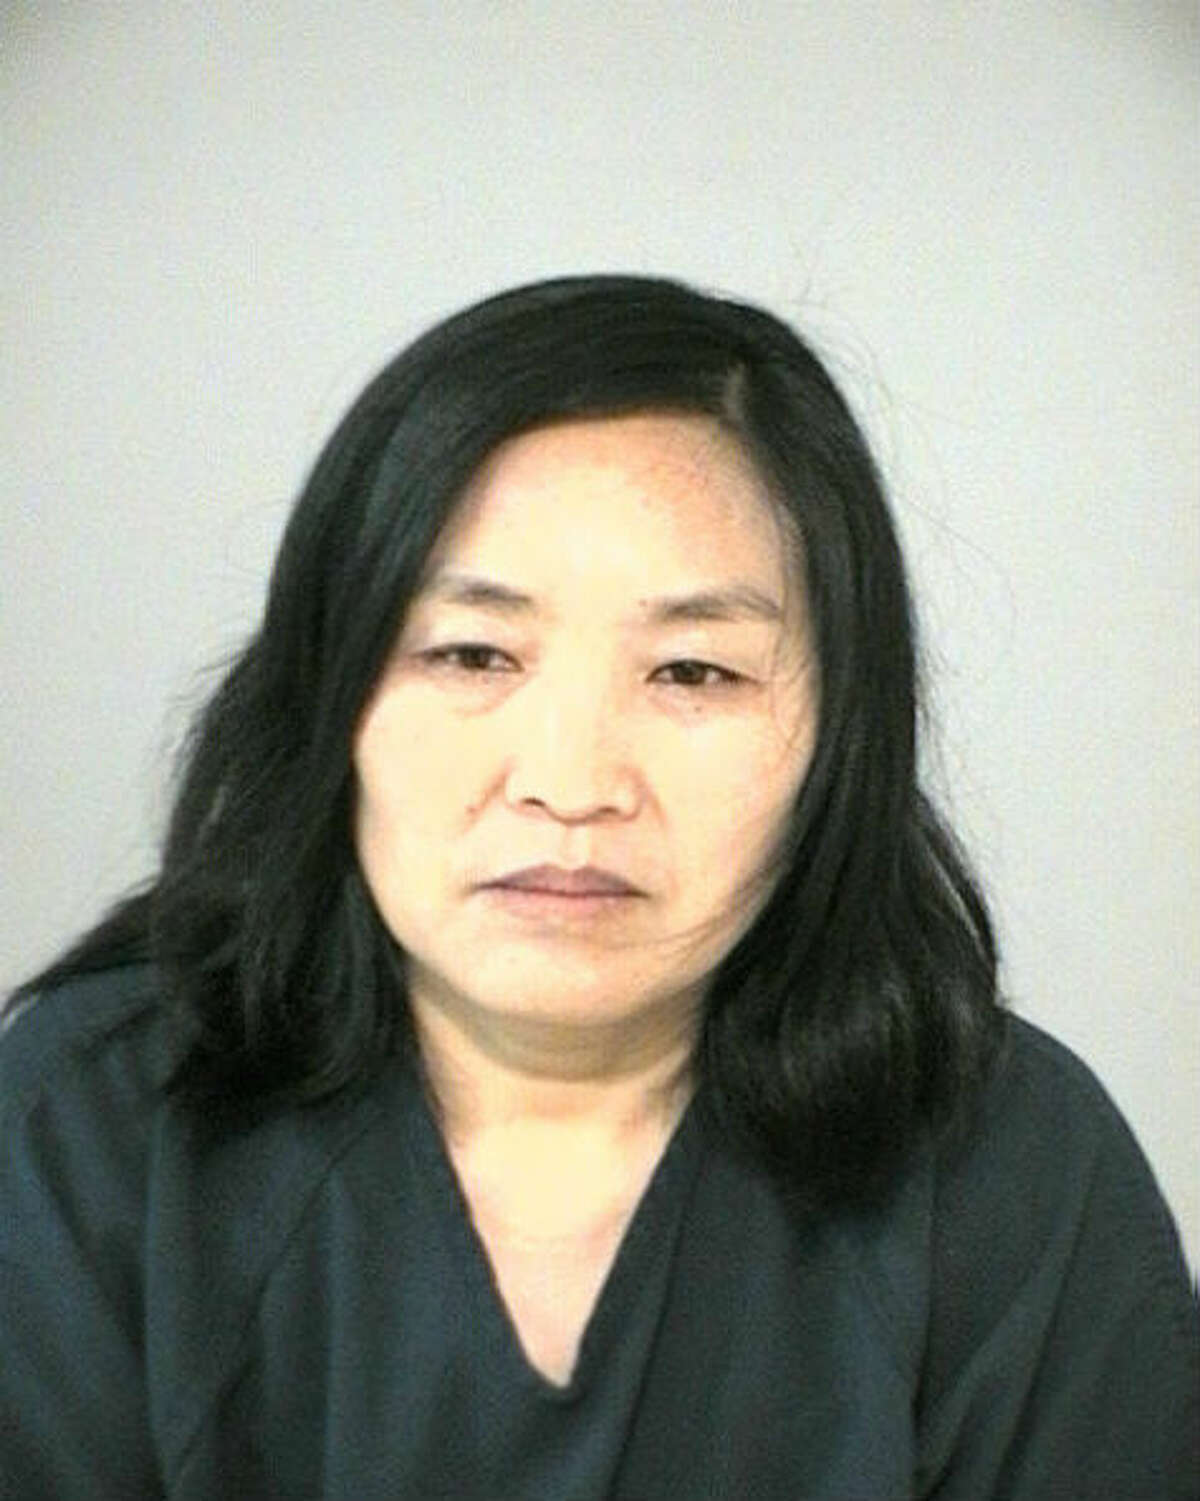 Junying Wang, 49, was arrested and charged with prostitution during a bust of the Oasis Foot Reflexology spa in Cinco Ranch.